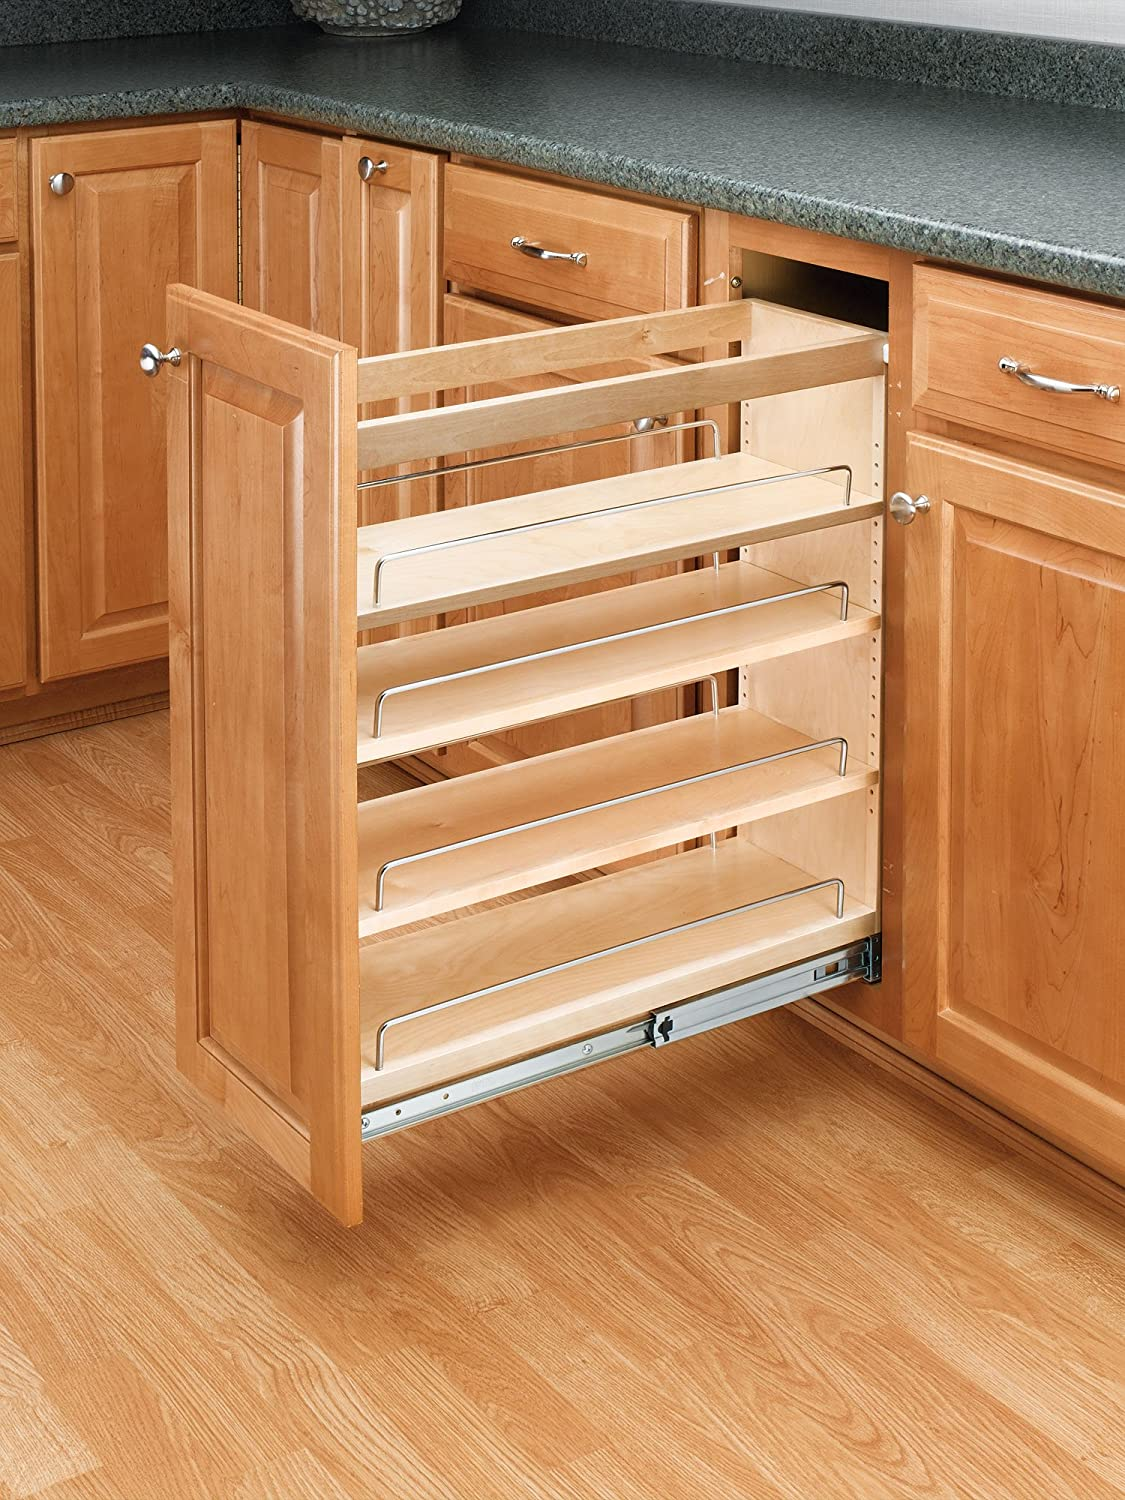 a shelf cabinet home amazon kitchen in base organizer wood pull dp out com rev bc